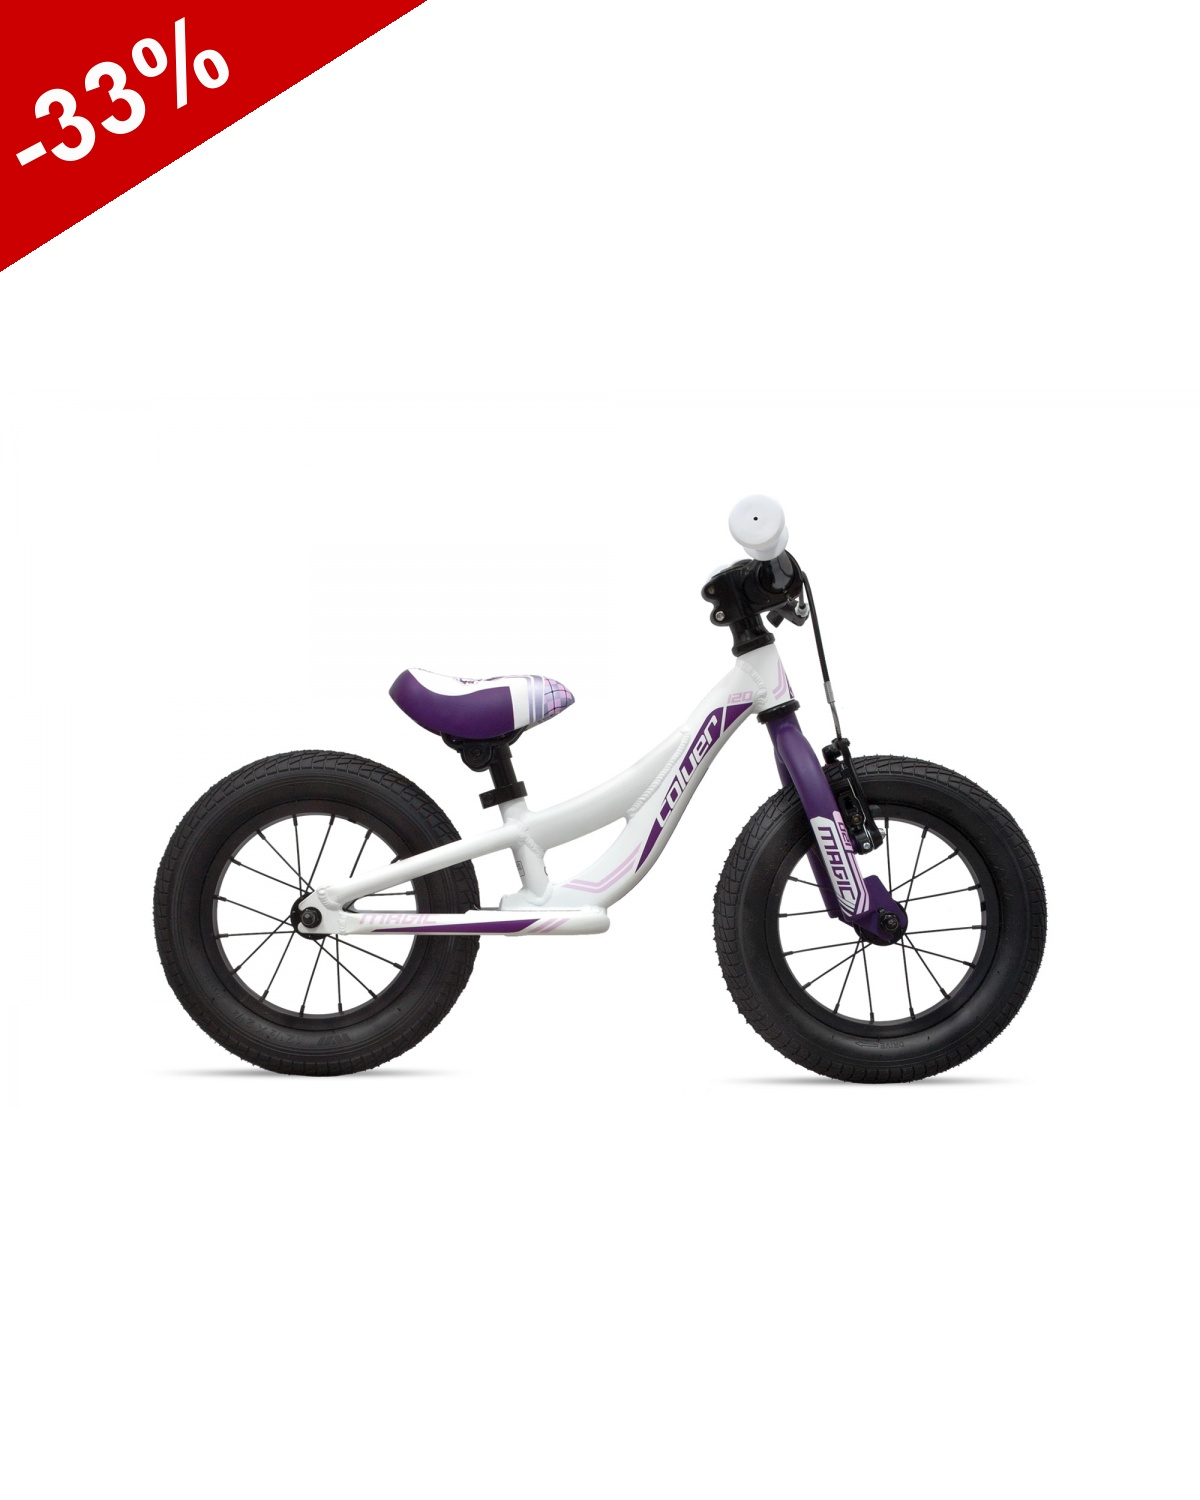 DRAISIENNE COLUER MAGIC 120 - Blanc / Violet